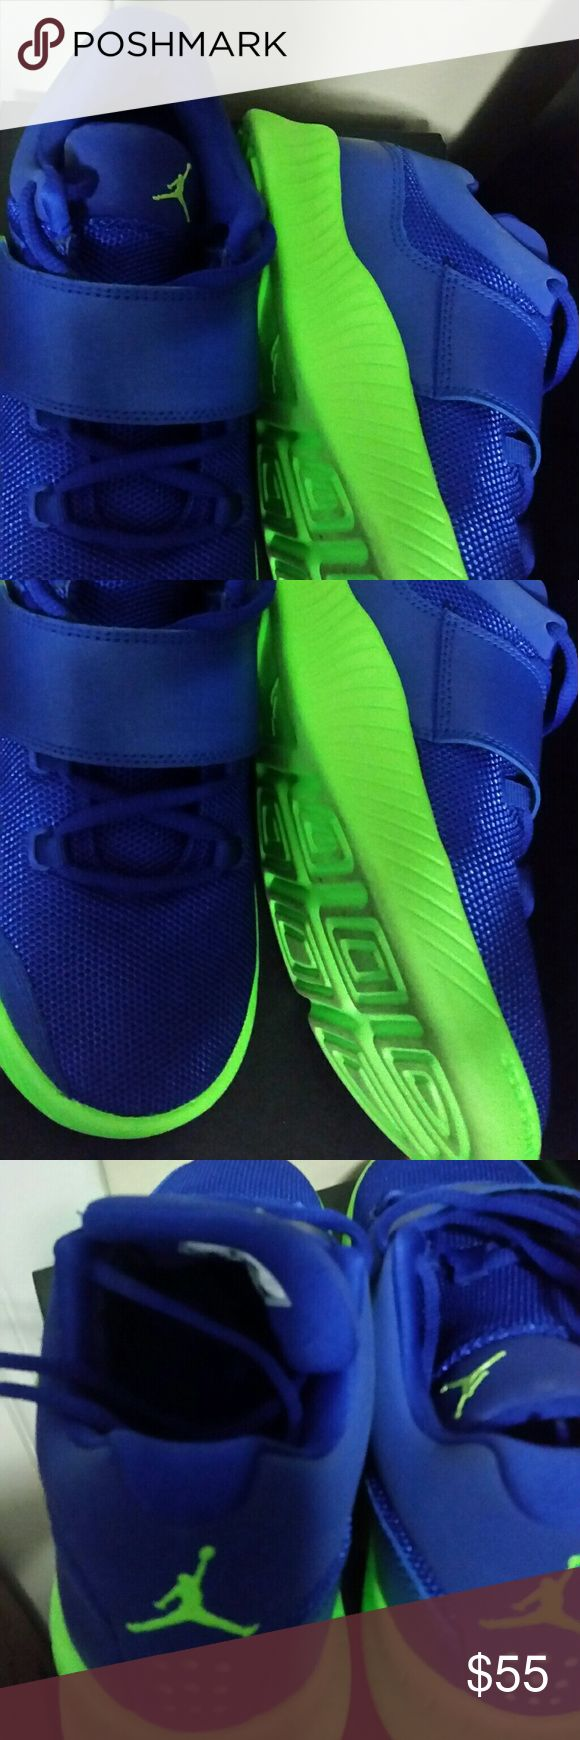 Blue and neon green Jordans Blue and green Jordan J23 shoes. Good for cross training and stlye. Size 5.5 y boys (size 6 women's) Jordan Shoes Athletic Shoes